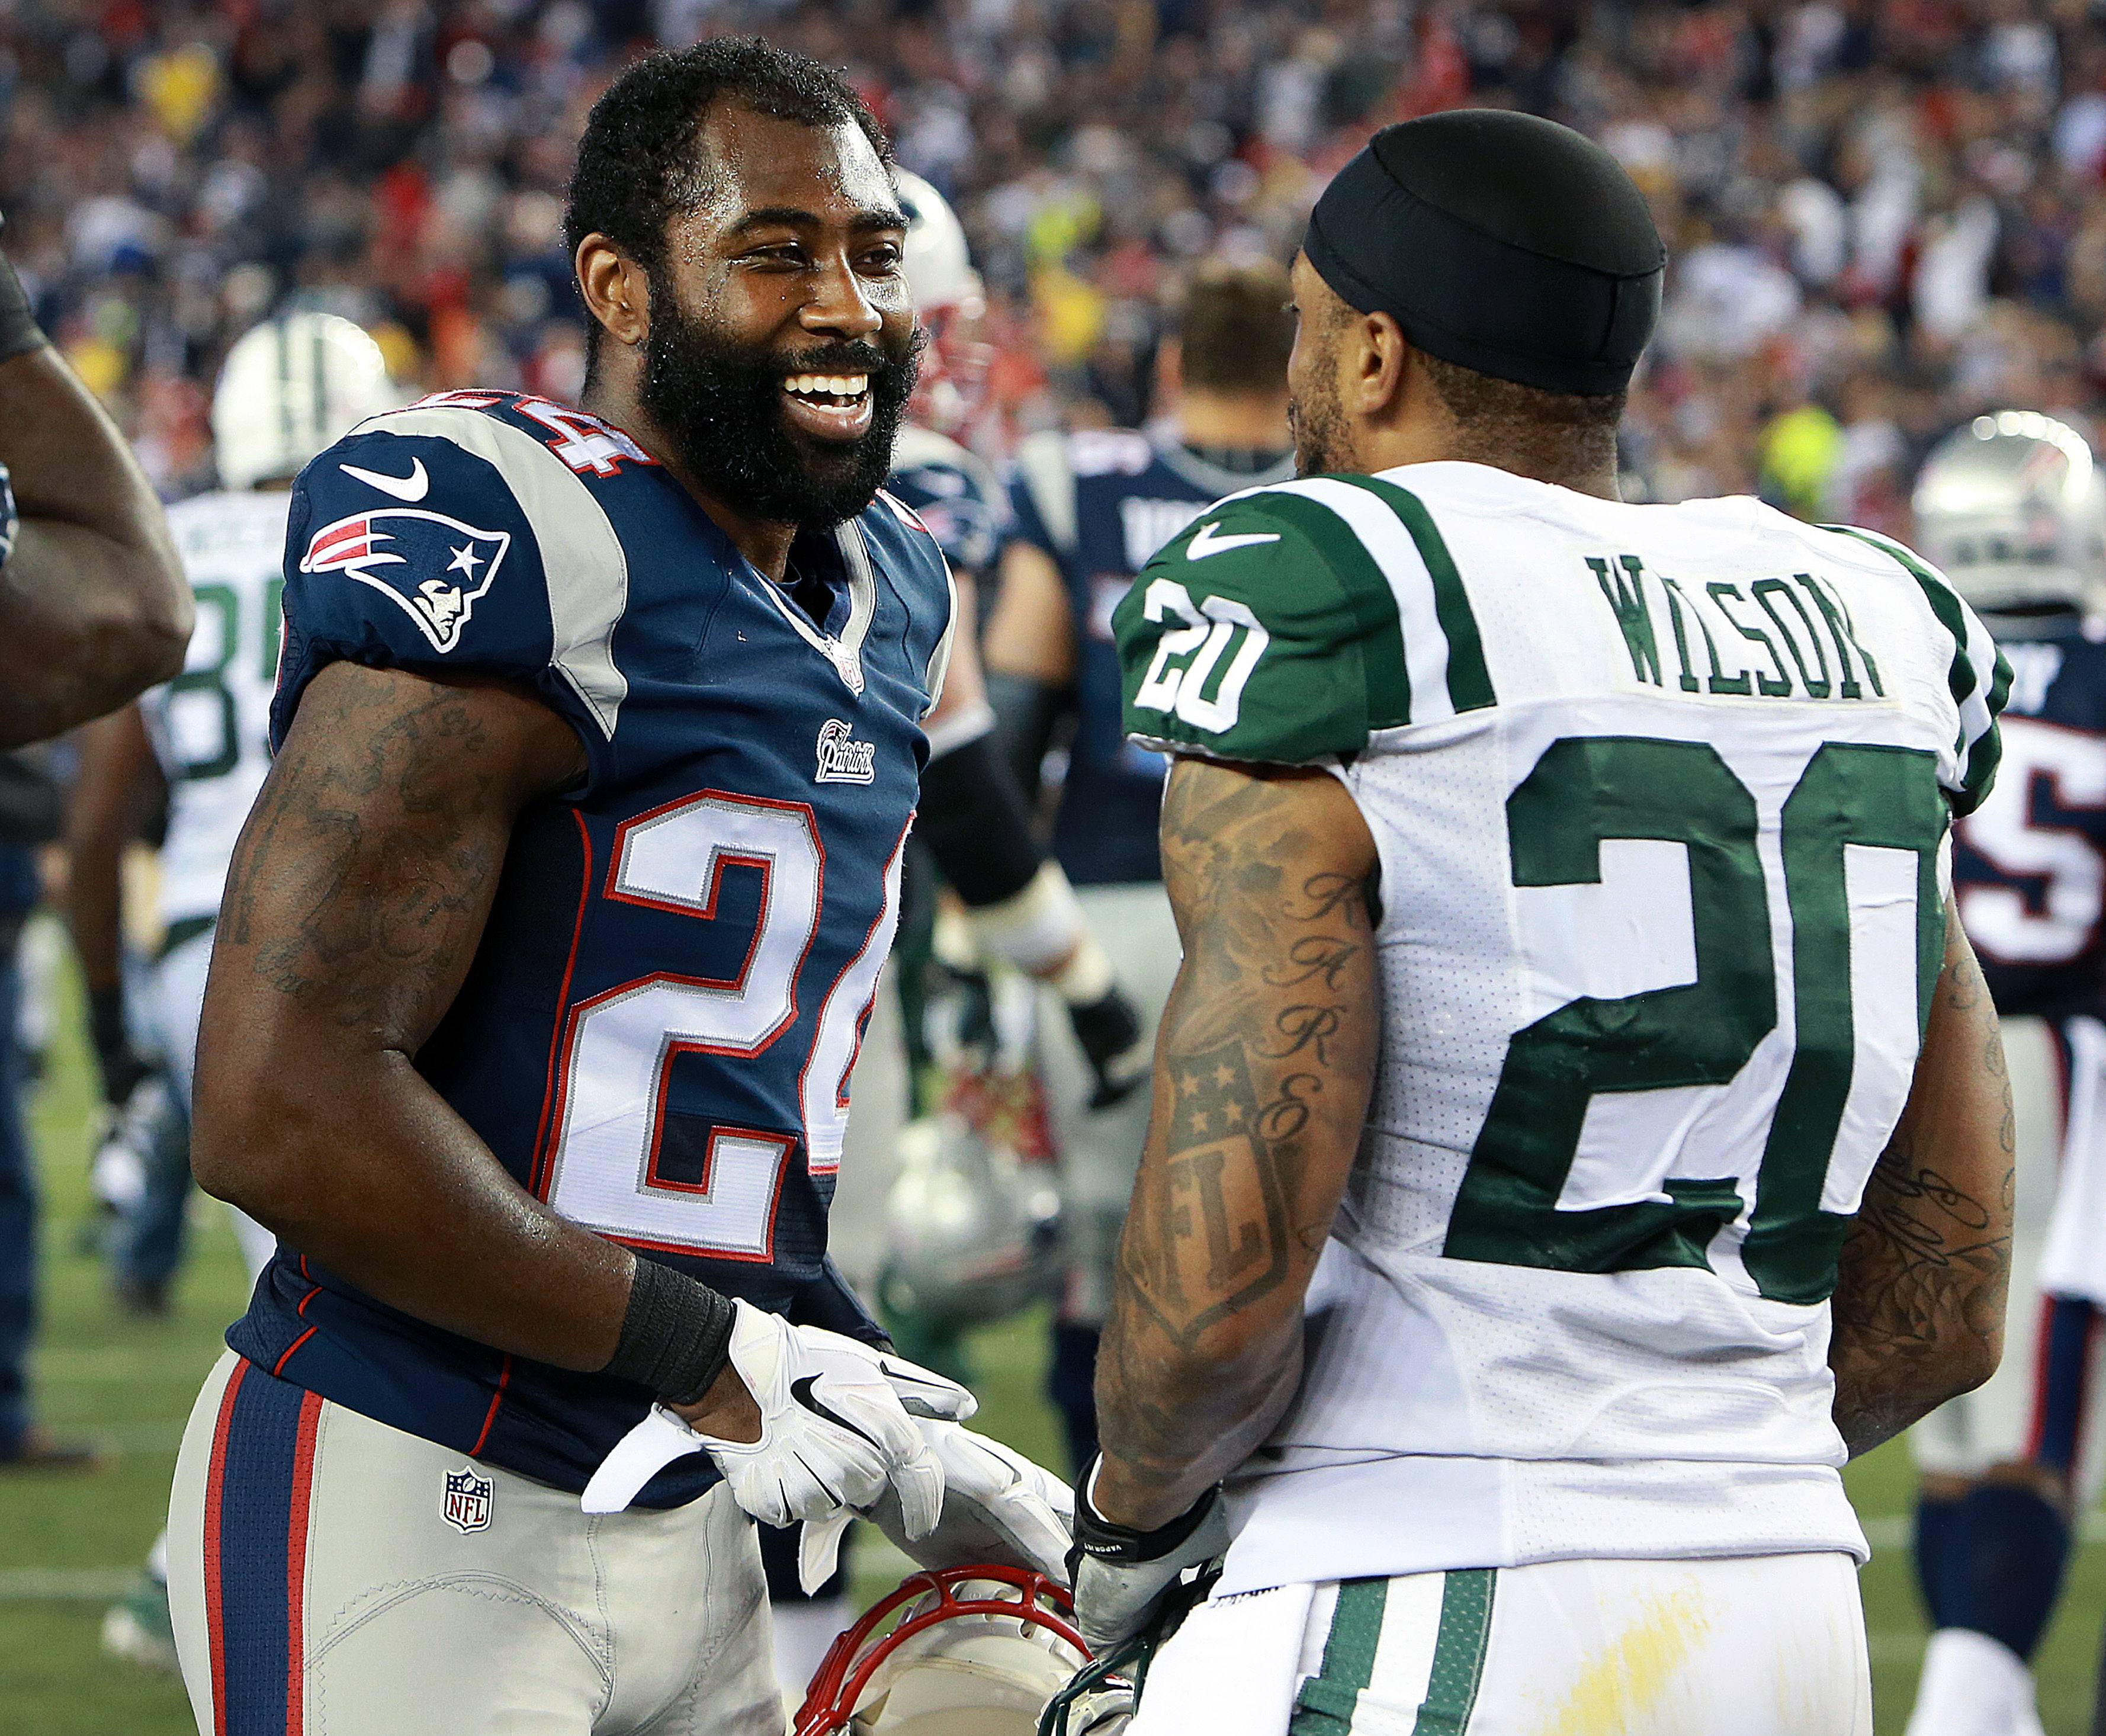 Darrelle Revis tardy excuse kept him out of practice